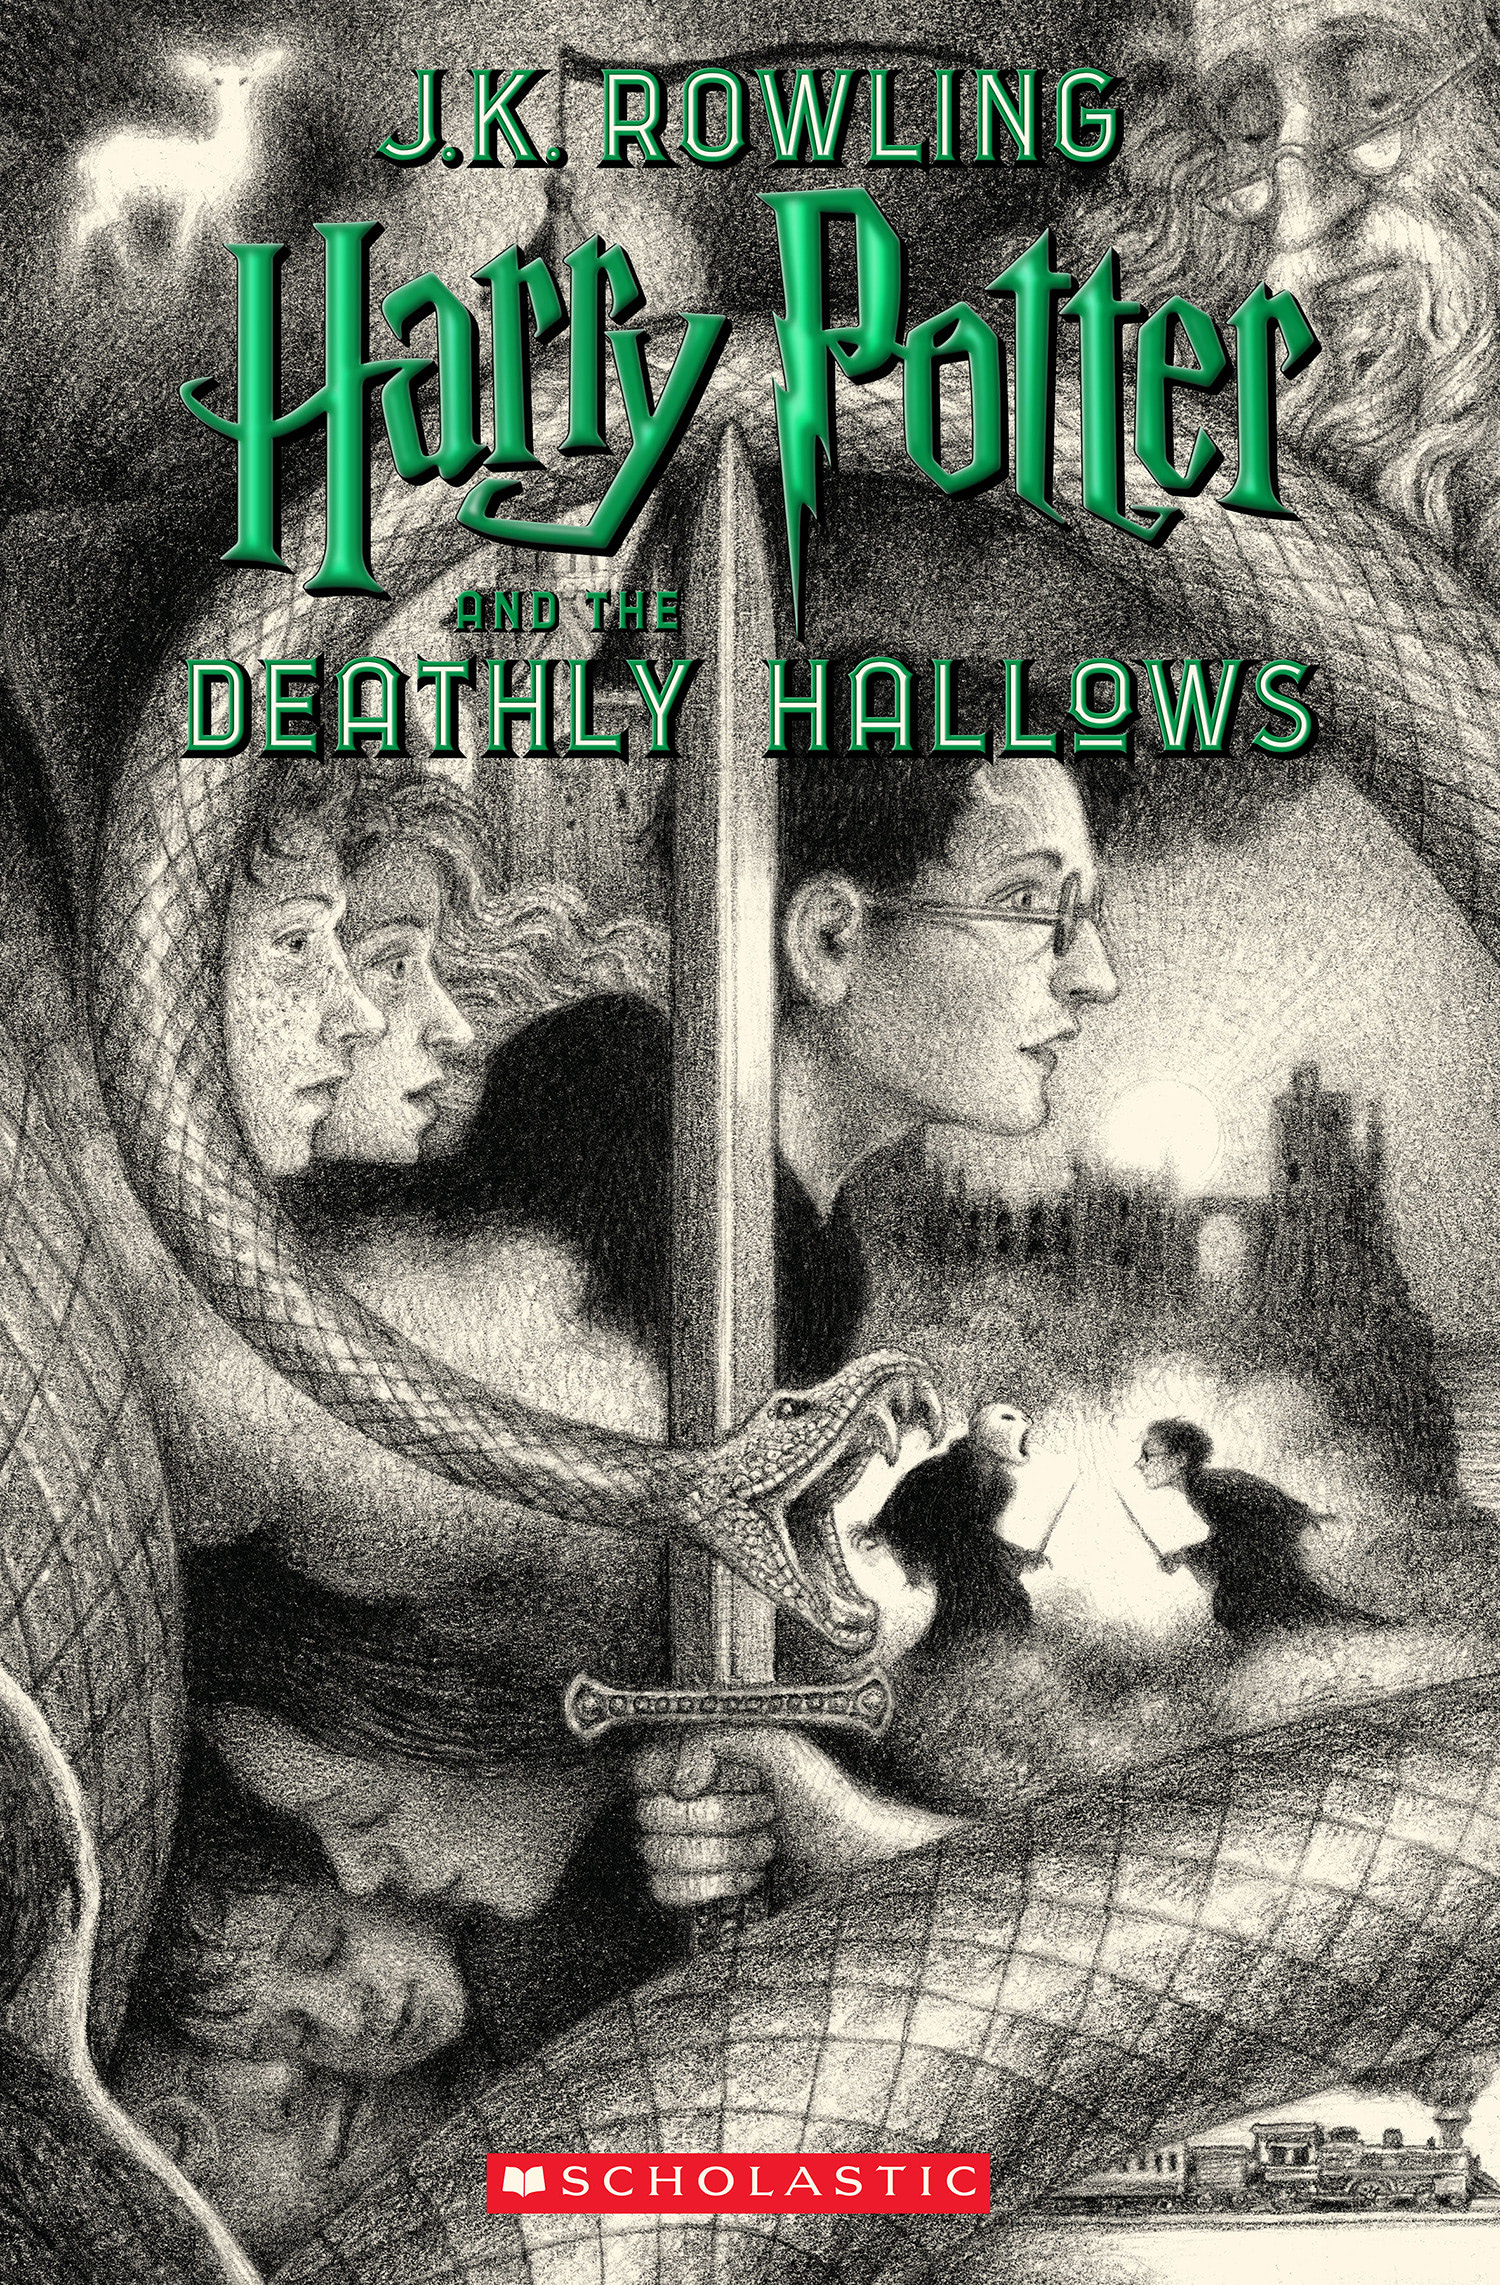 'Deathly Hallows' US 20th anniversary edition